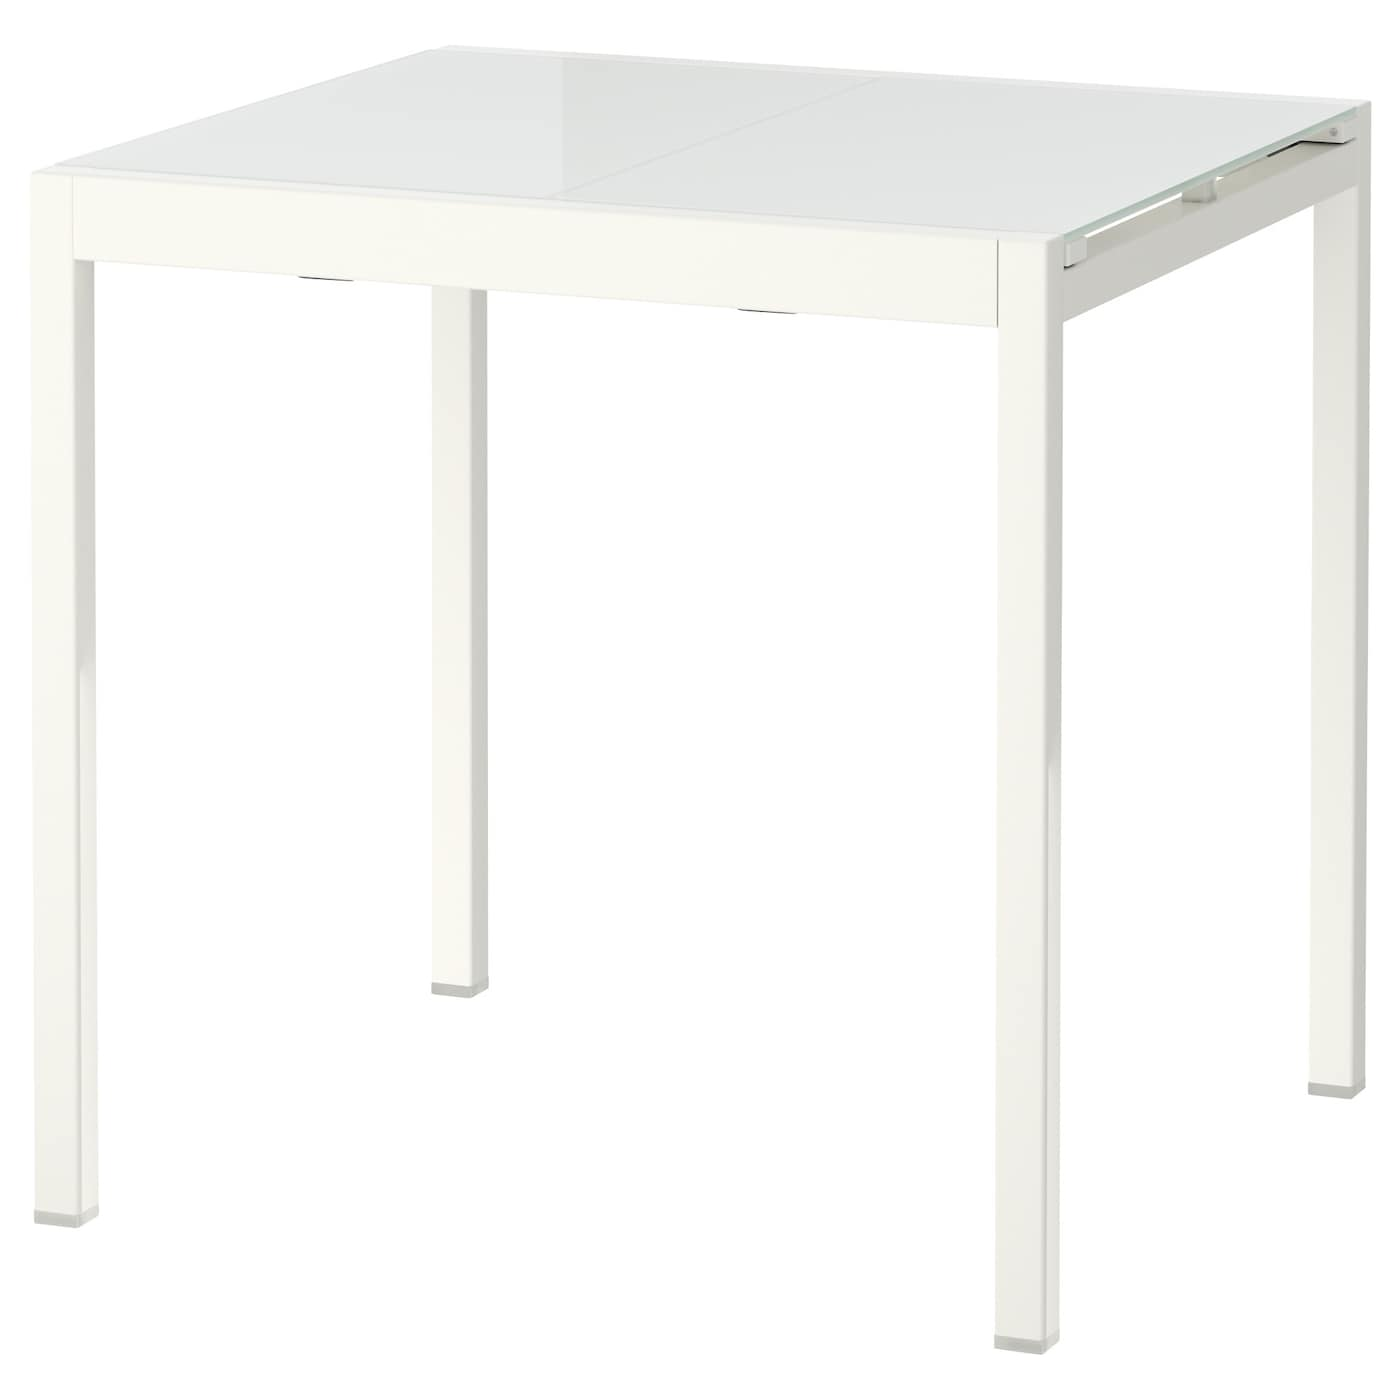 Glivarp extendable table white 75 115x70 cm ikea for Table extensible quadrato